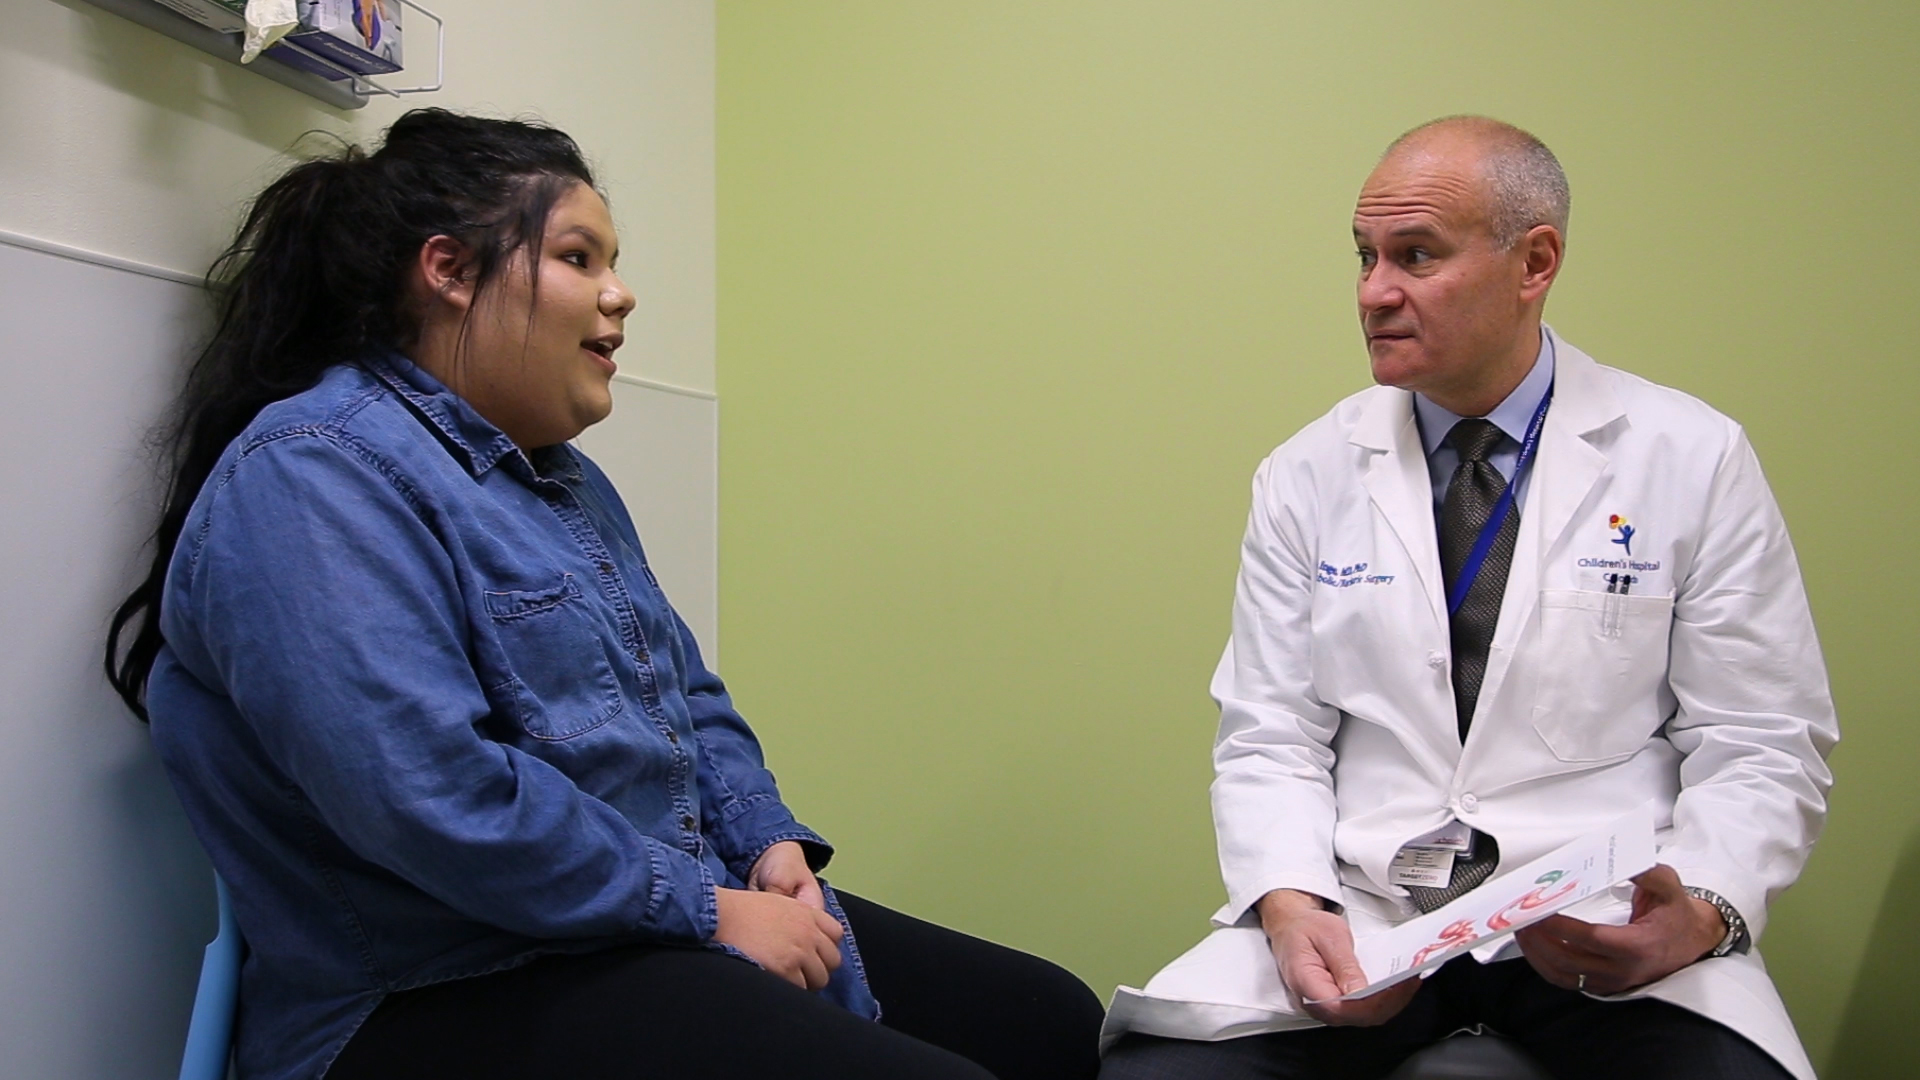 Dr. Thomas Inge is in the bariatric surgery clinic speaking to an adolescent patient.